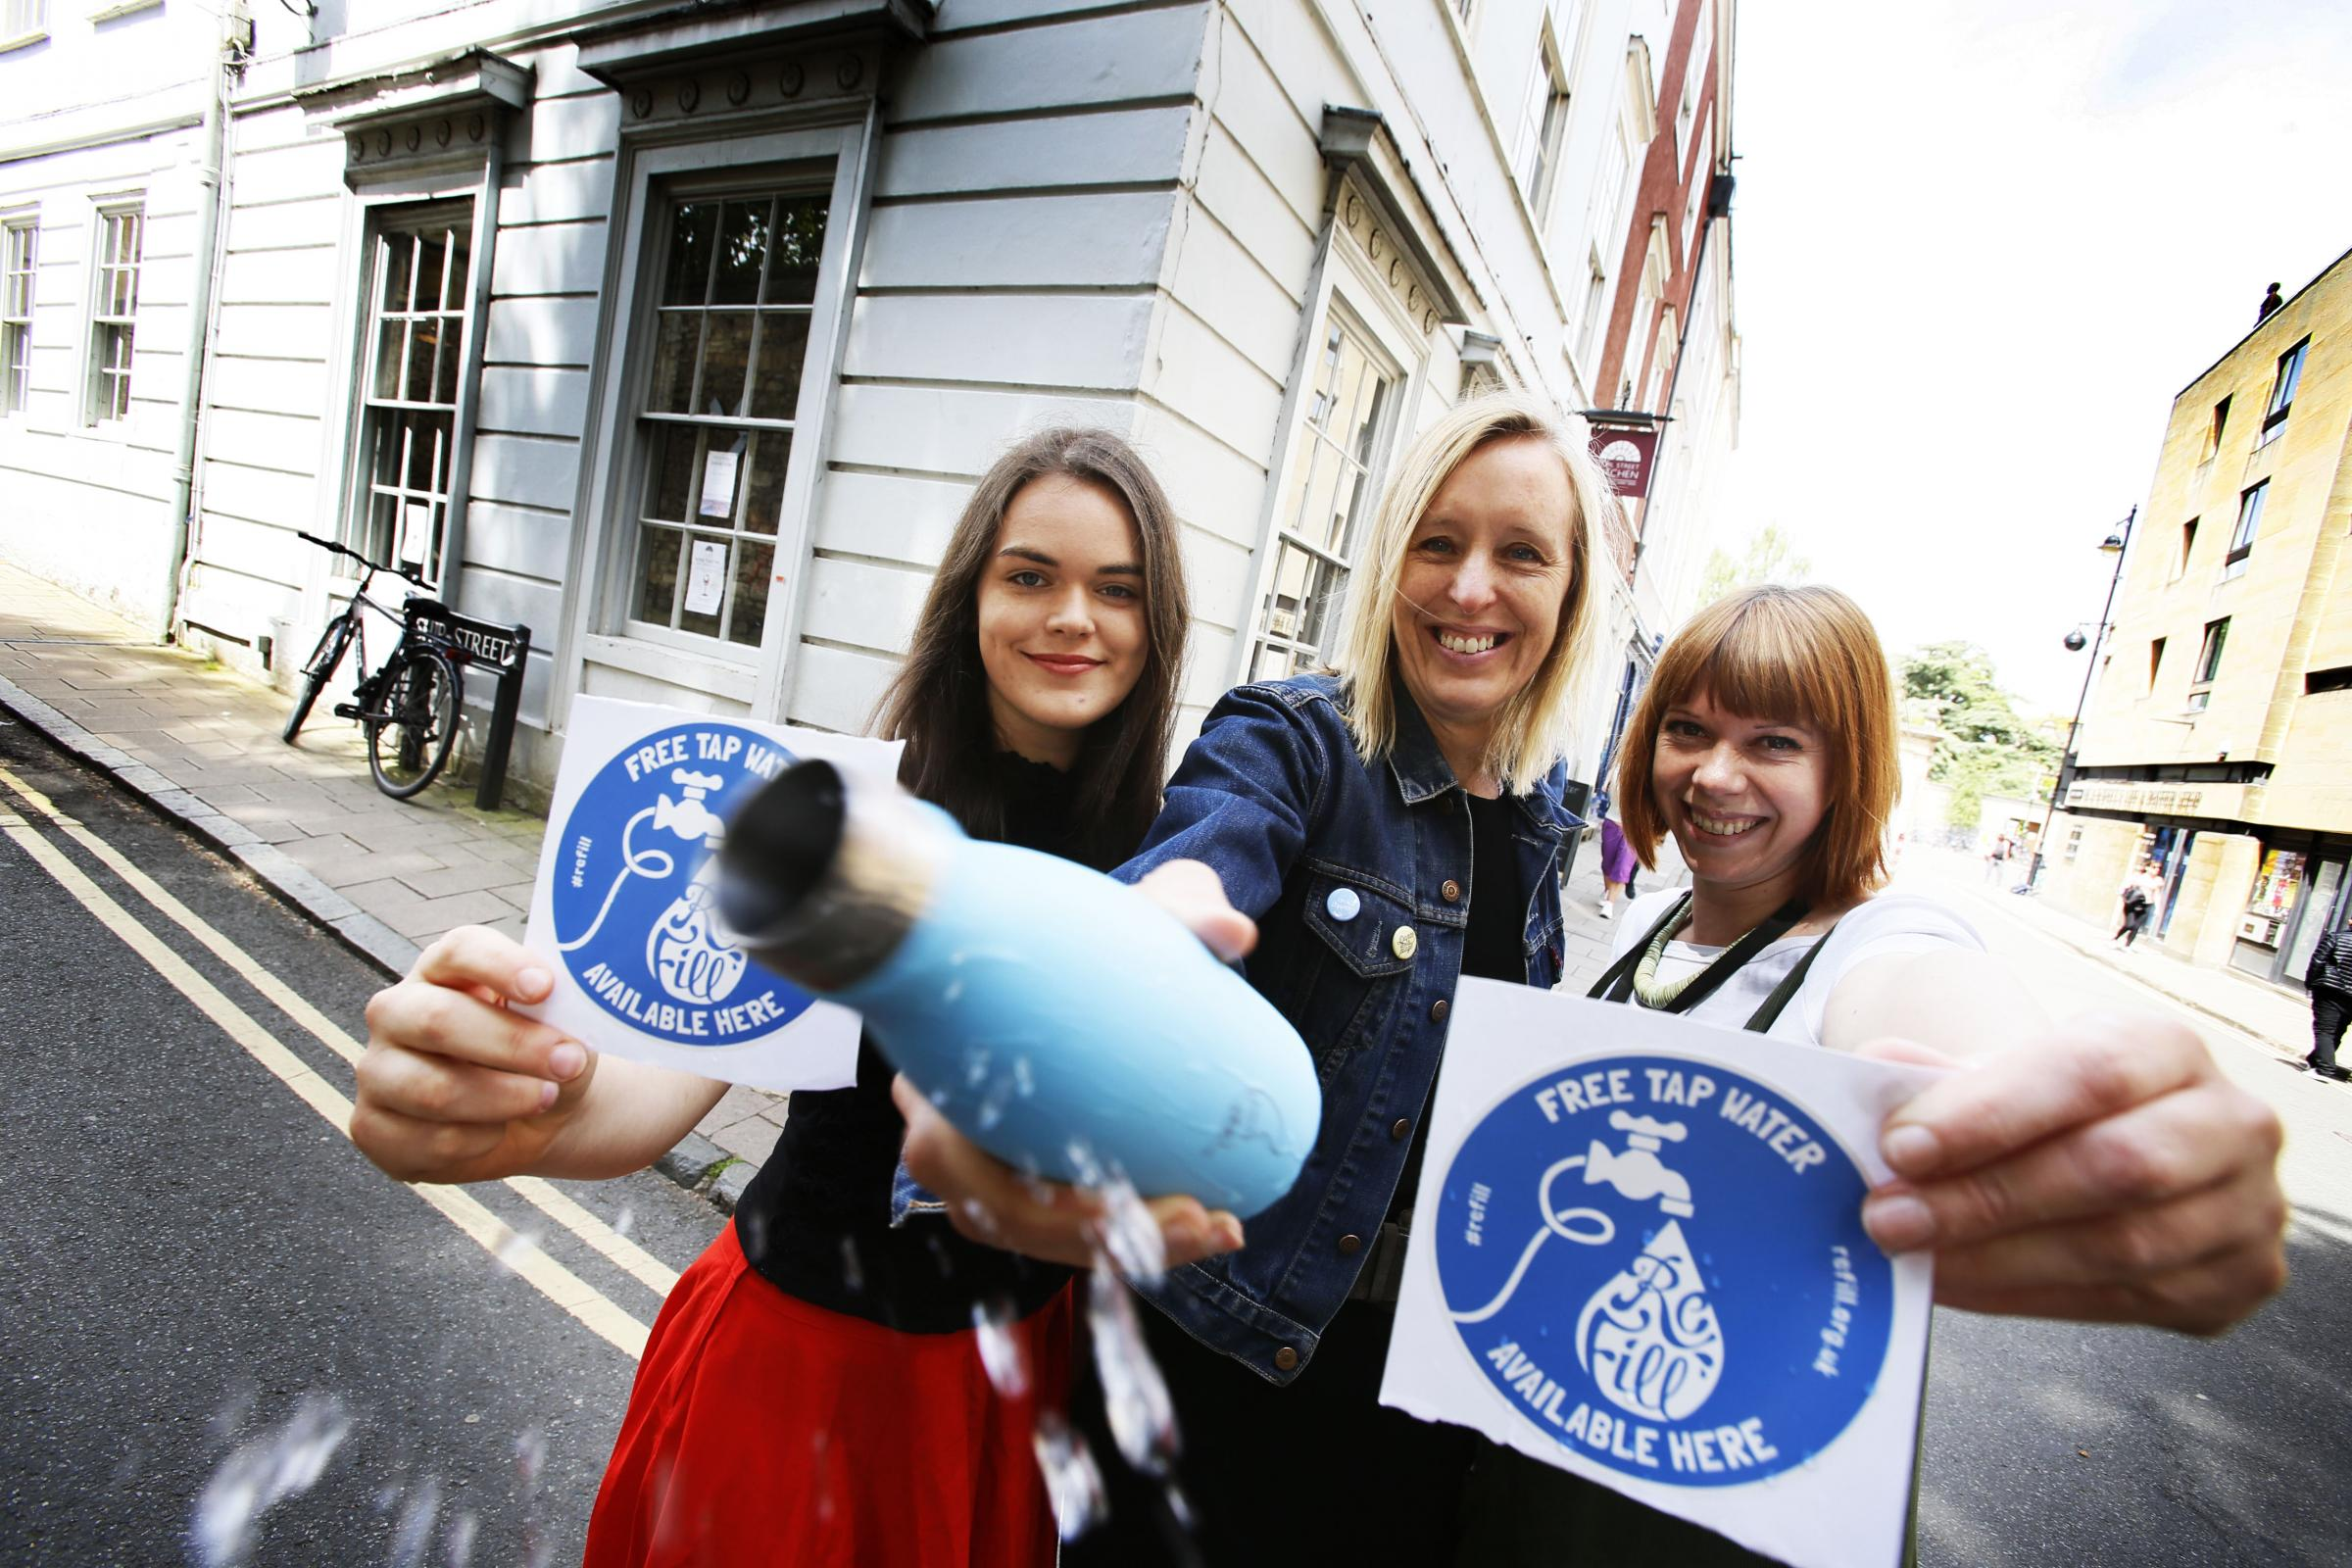 A national Refill scheme, started by Bristol-based City to Sea, is now setting up in Oxford to reduce plastic waste. The scheme promotes and encourages the use of free tap water in restaurants, cafes, bars, pubs, museums and galleries on every high street